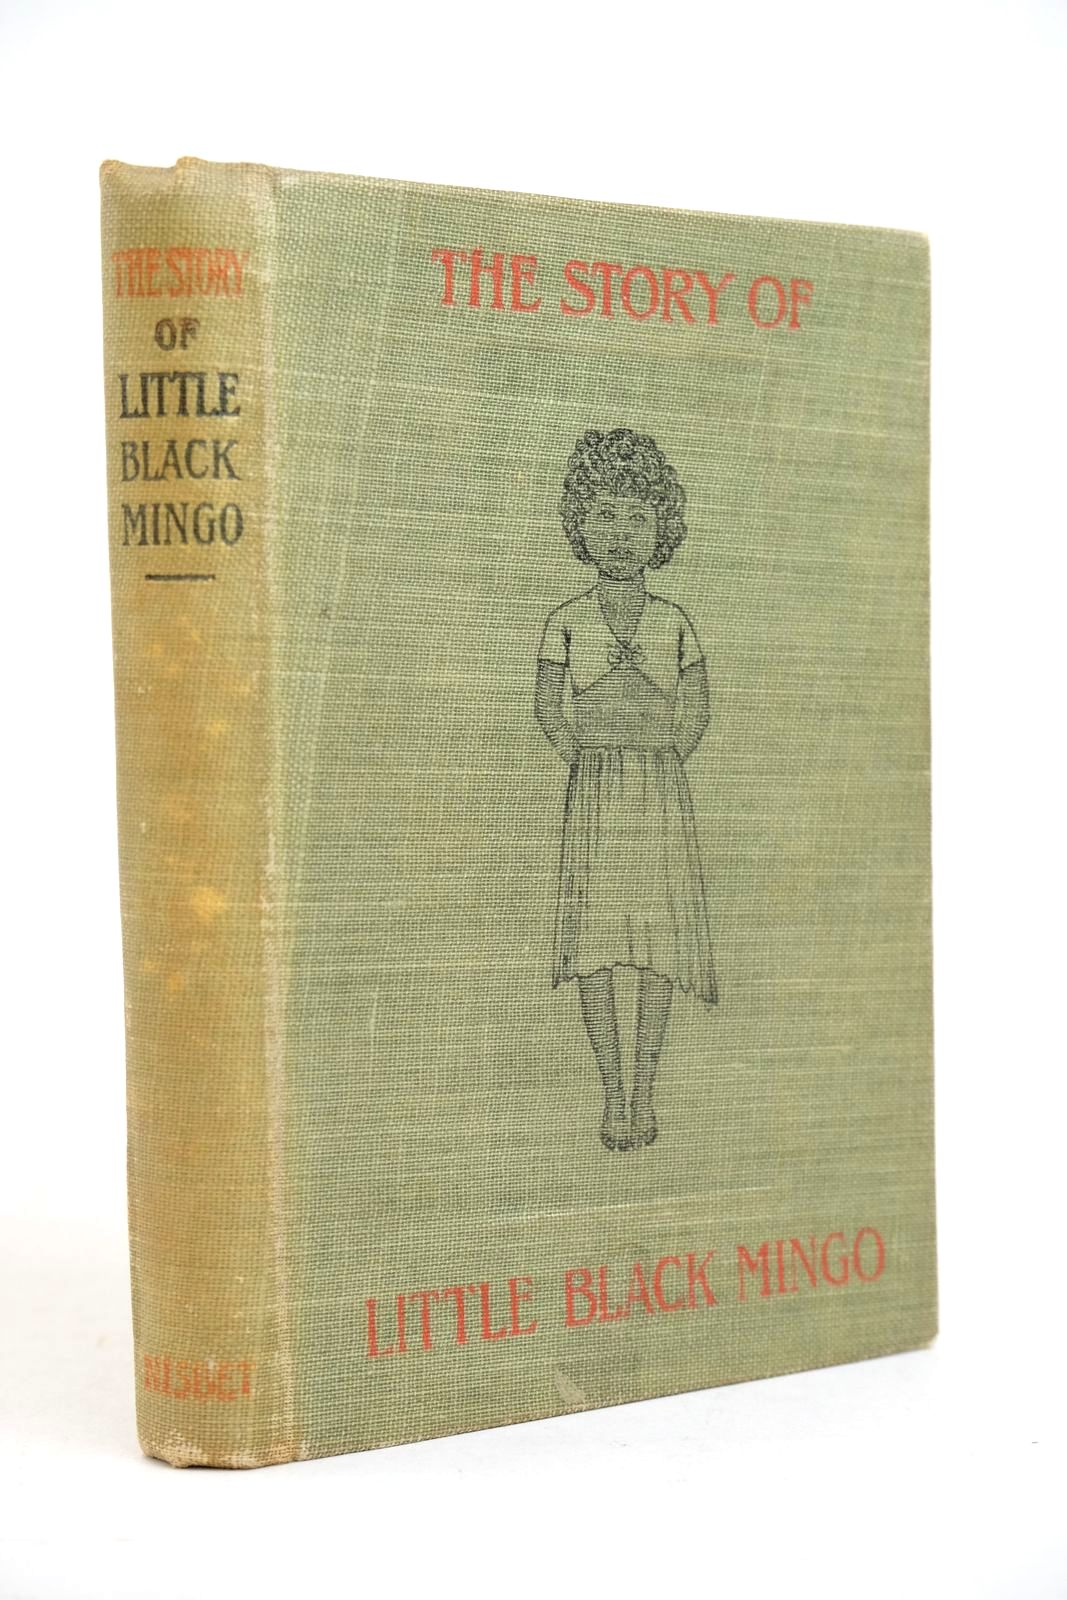 Photo of THE STORY OF LITTLE BLACK MINGO written by Bannerman, Helen illustrated by Bannerman, Helen published by James Nisbet & Co. Ltd. (STOCK CODE: 2134776)  for sale by Stella & Rose's Books